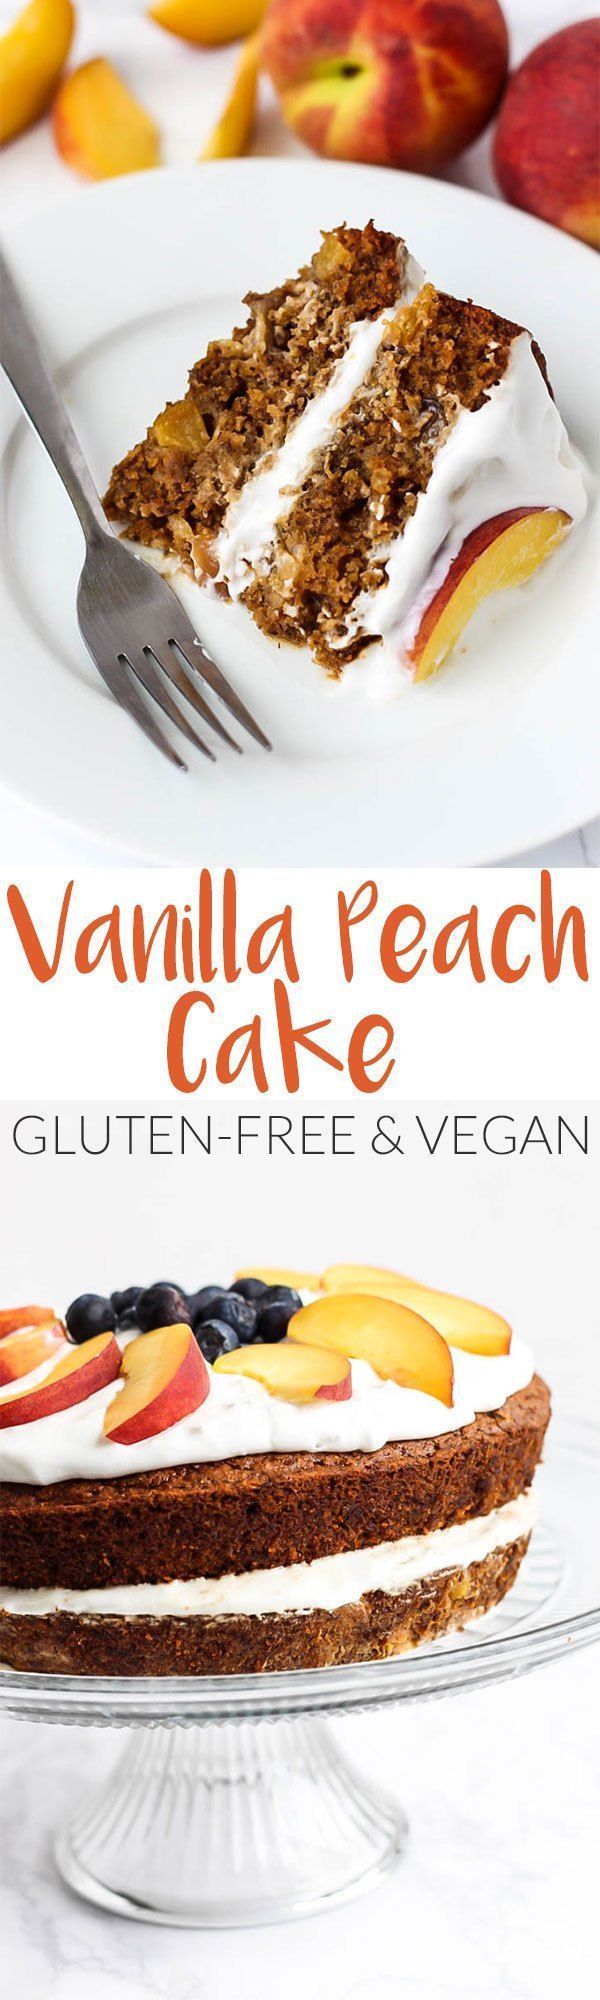 Full of juicy peaches, this Vegan & Gluten-Free Vanilla Peach Cake is a great healthier dessert made with grain-free ingredients you can feel good about. #guiltfree #cake